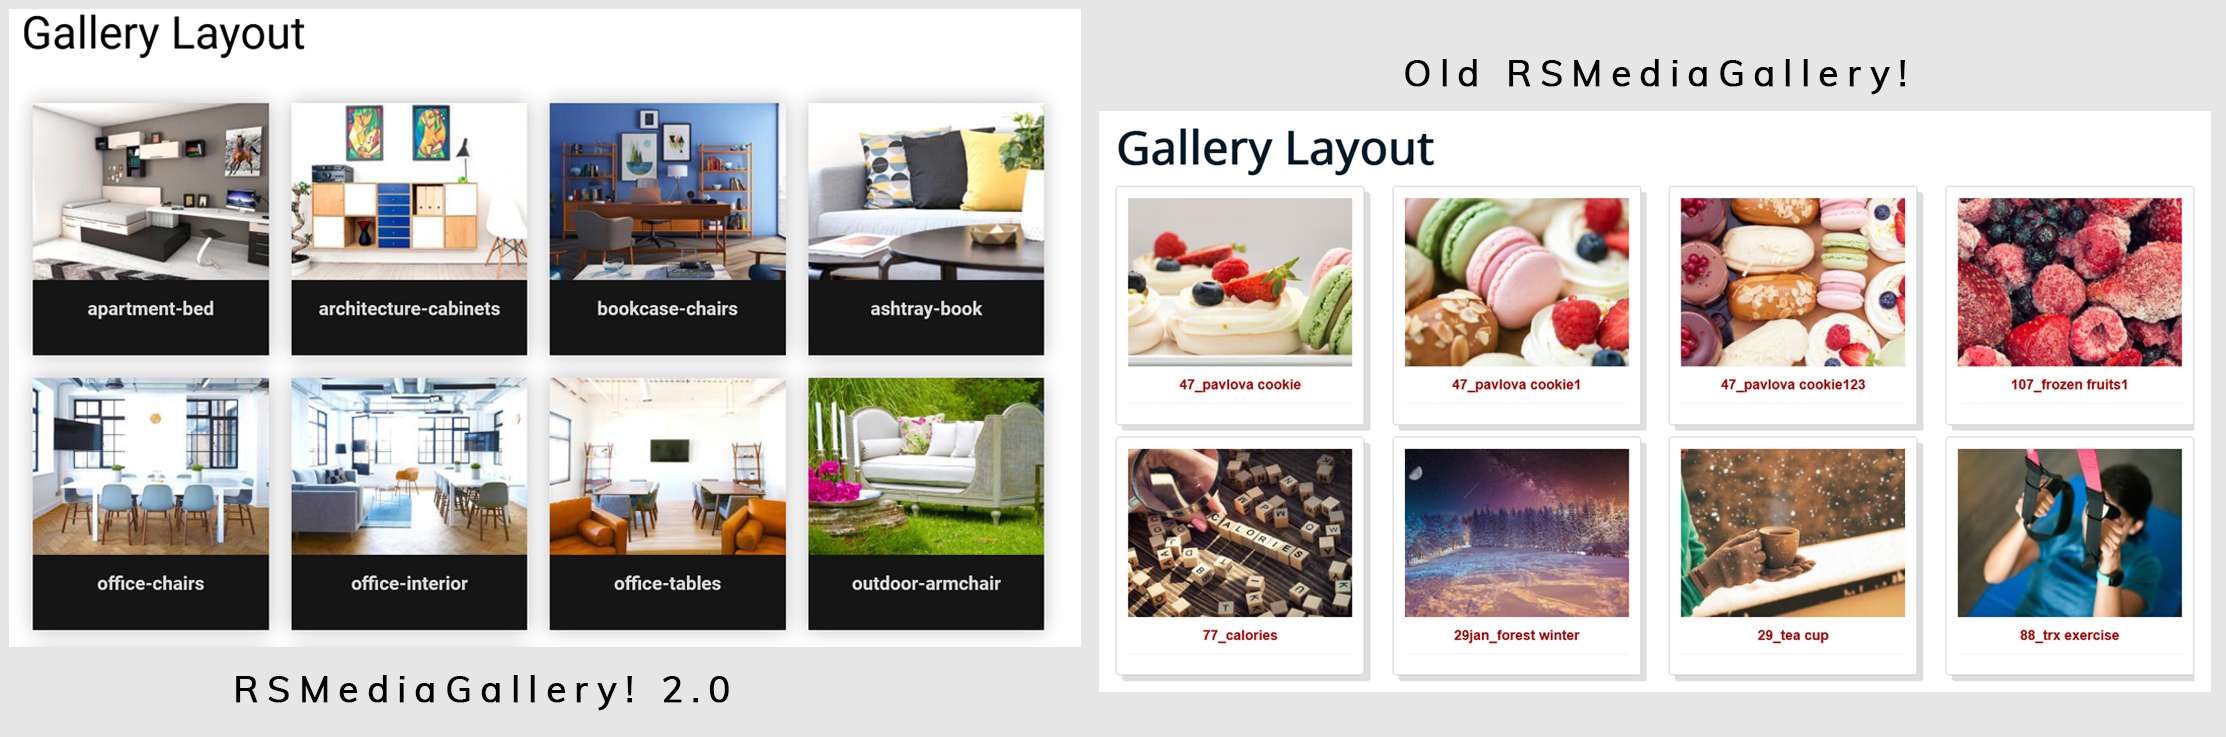 RSMediaGallery! 2.0 gallery layout